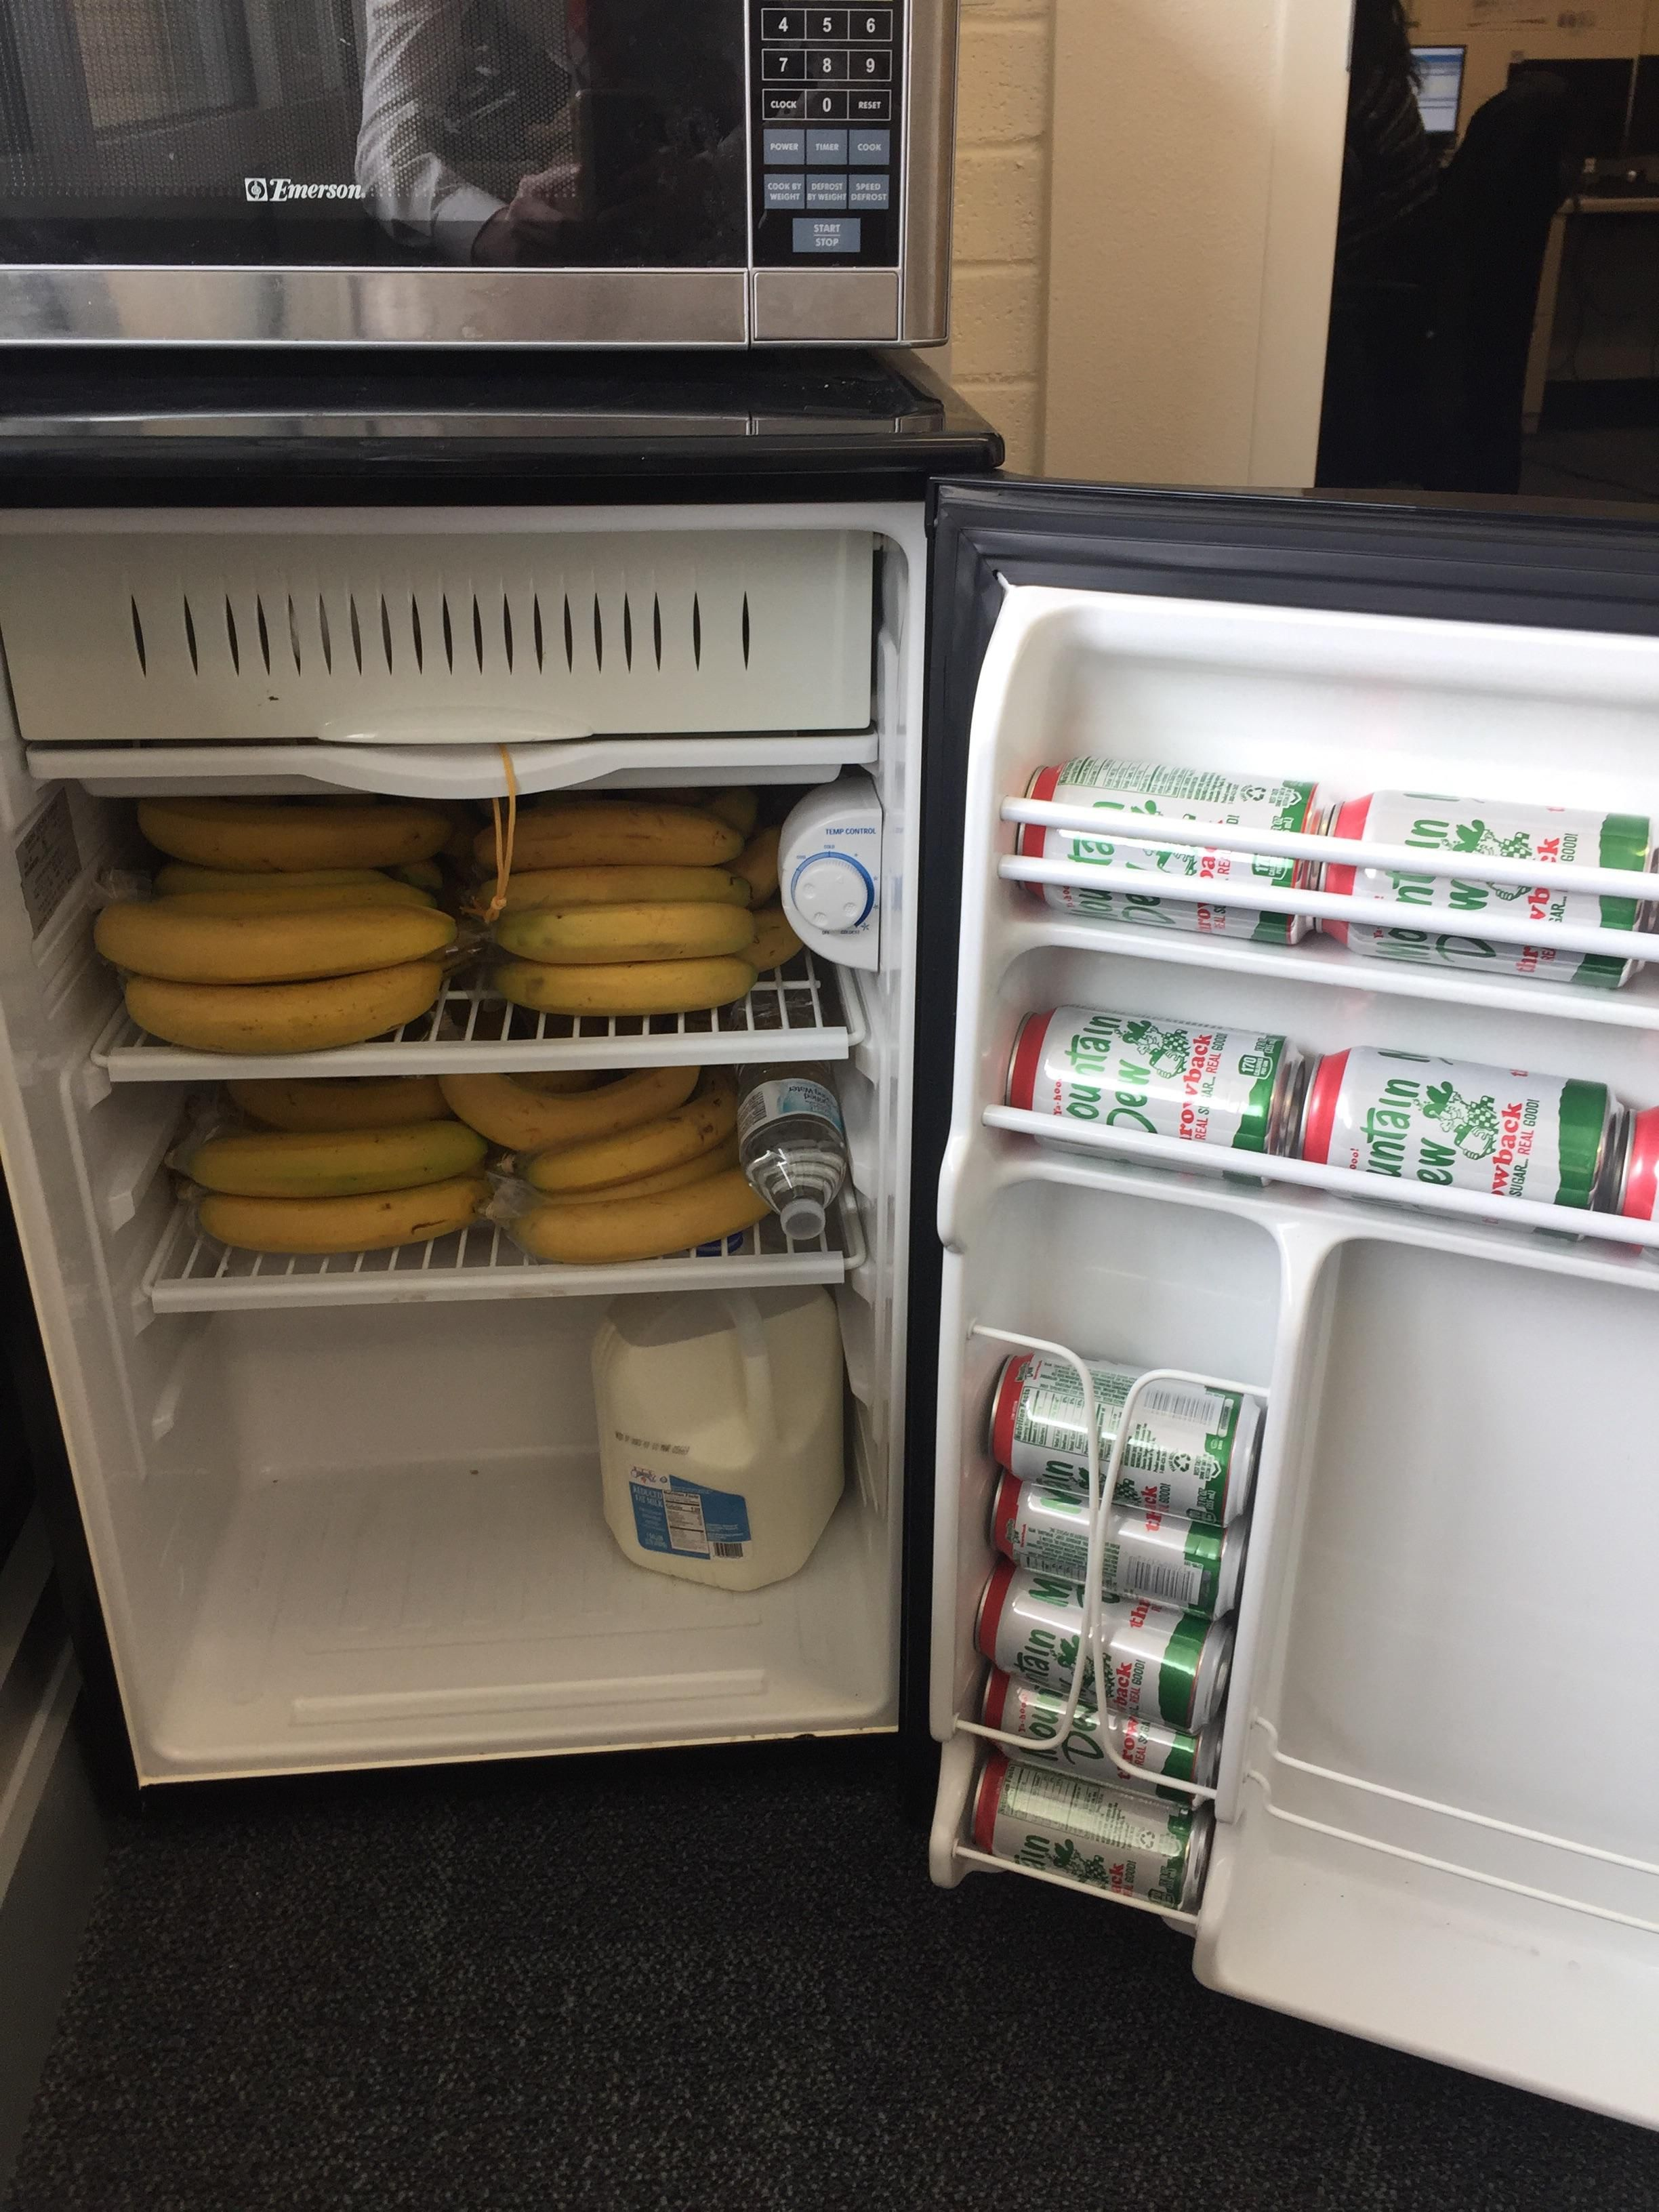 My boss's fridge is filled with only bananas mountain dew